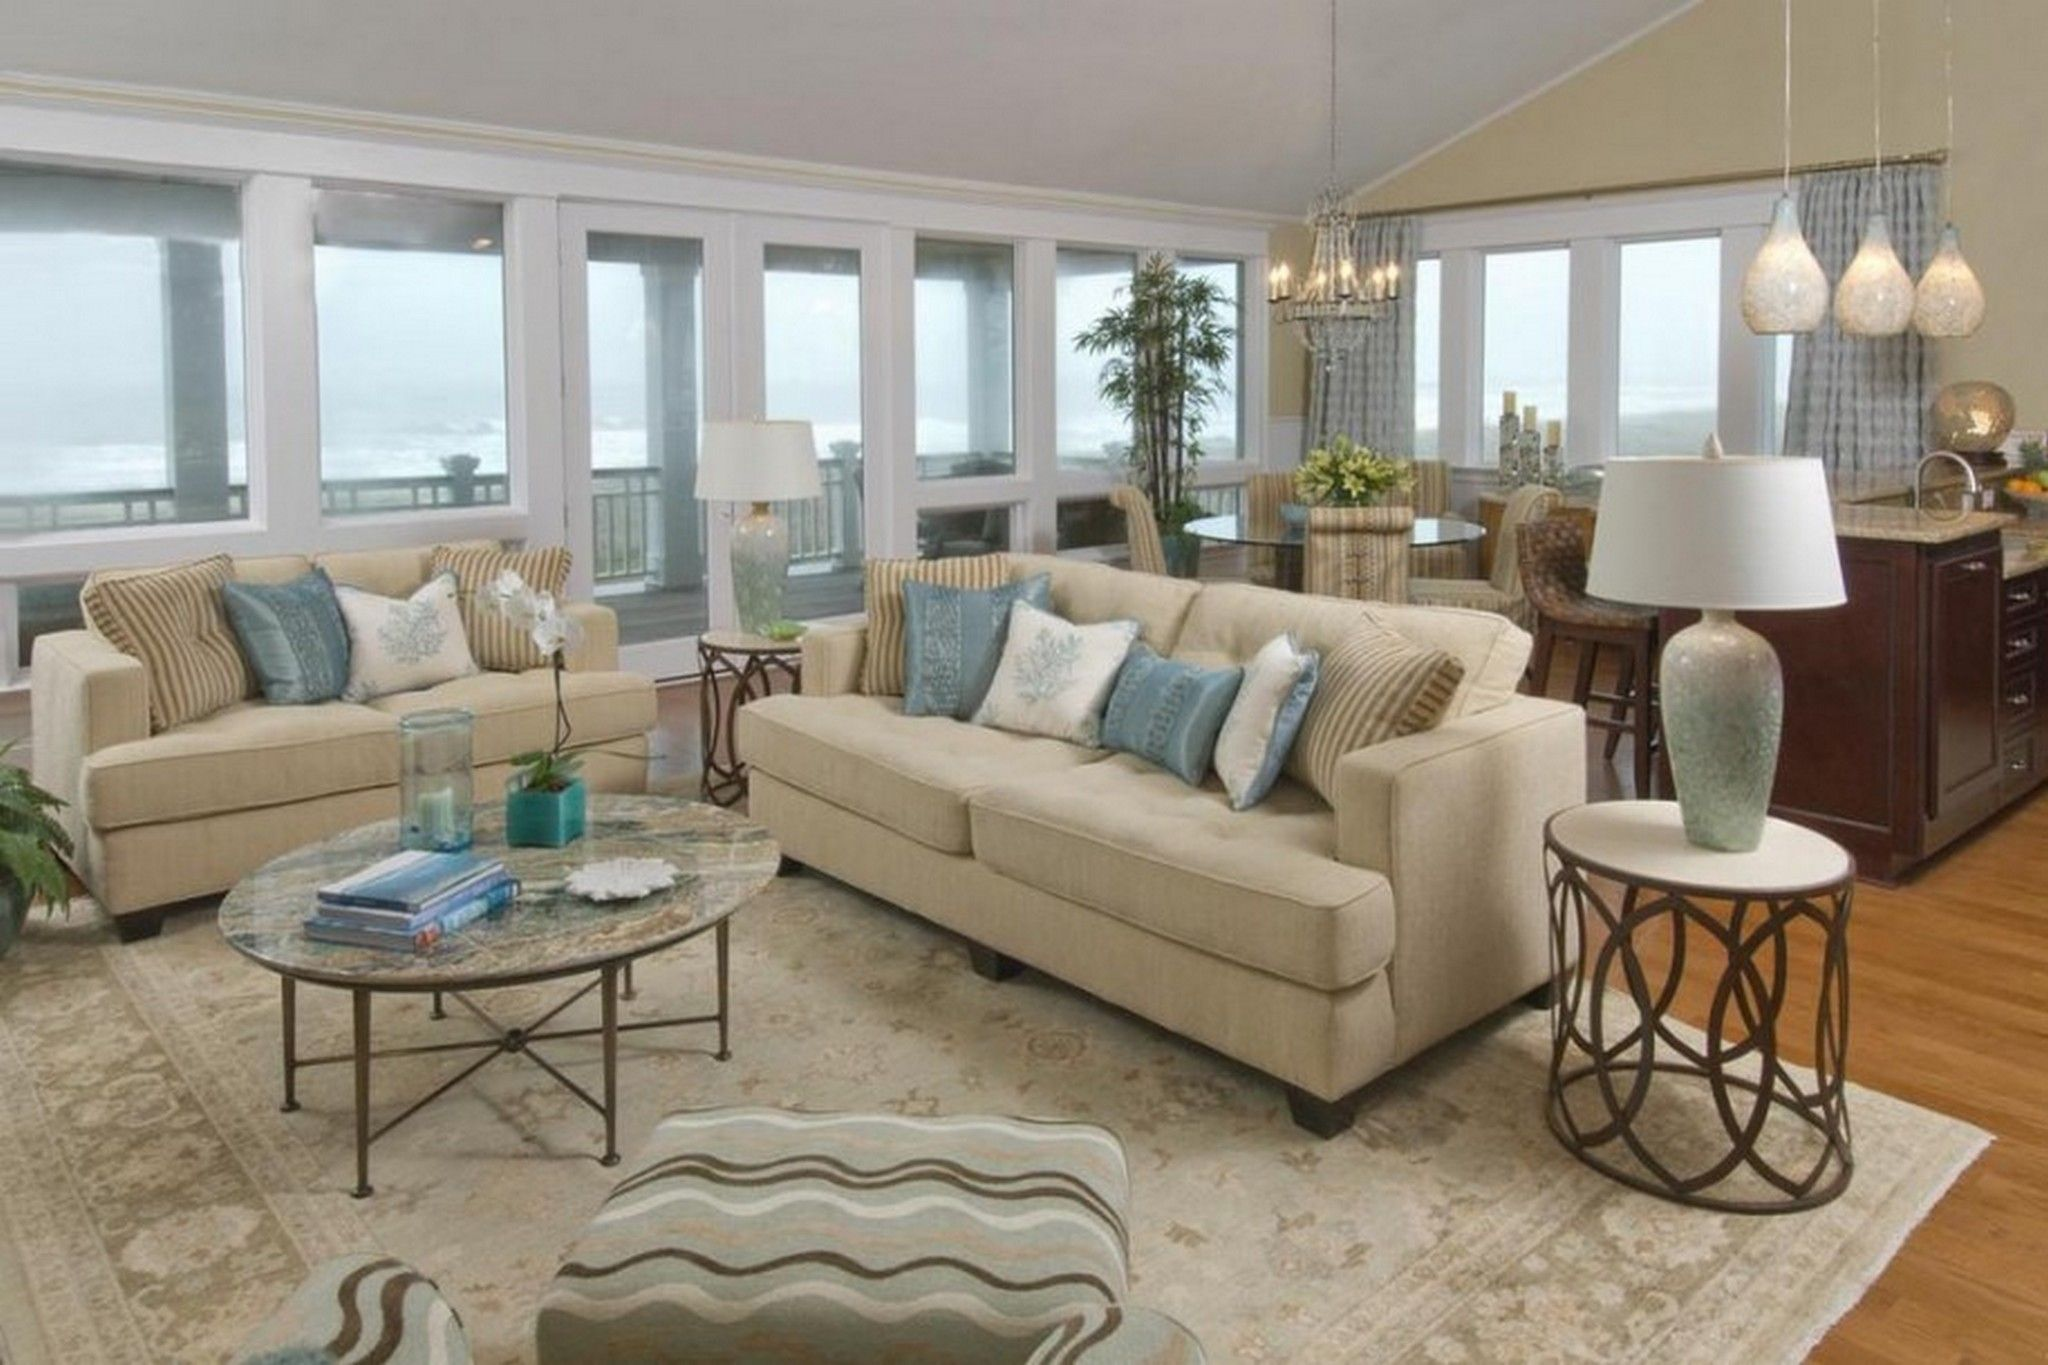 Beach Themed Living Room Design Captivating Beach Decor For The Living Room  Beach House Interiors Inspiration